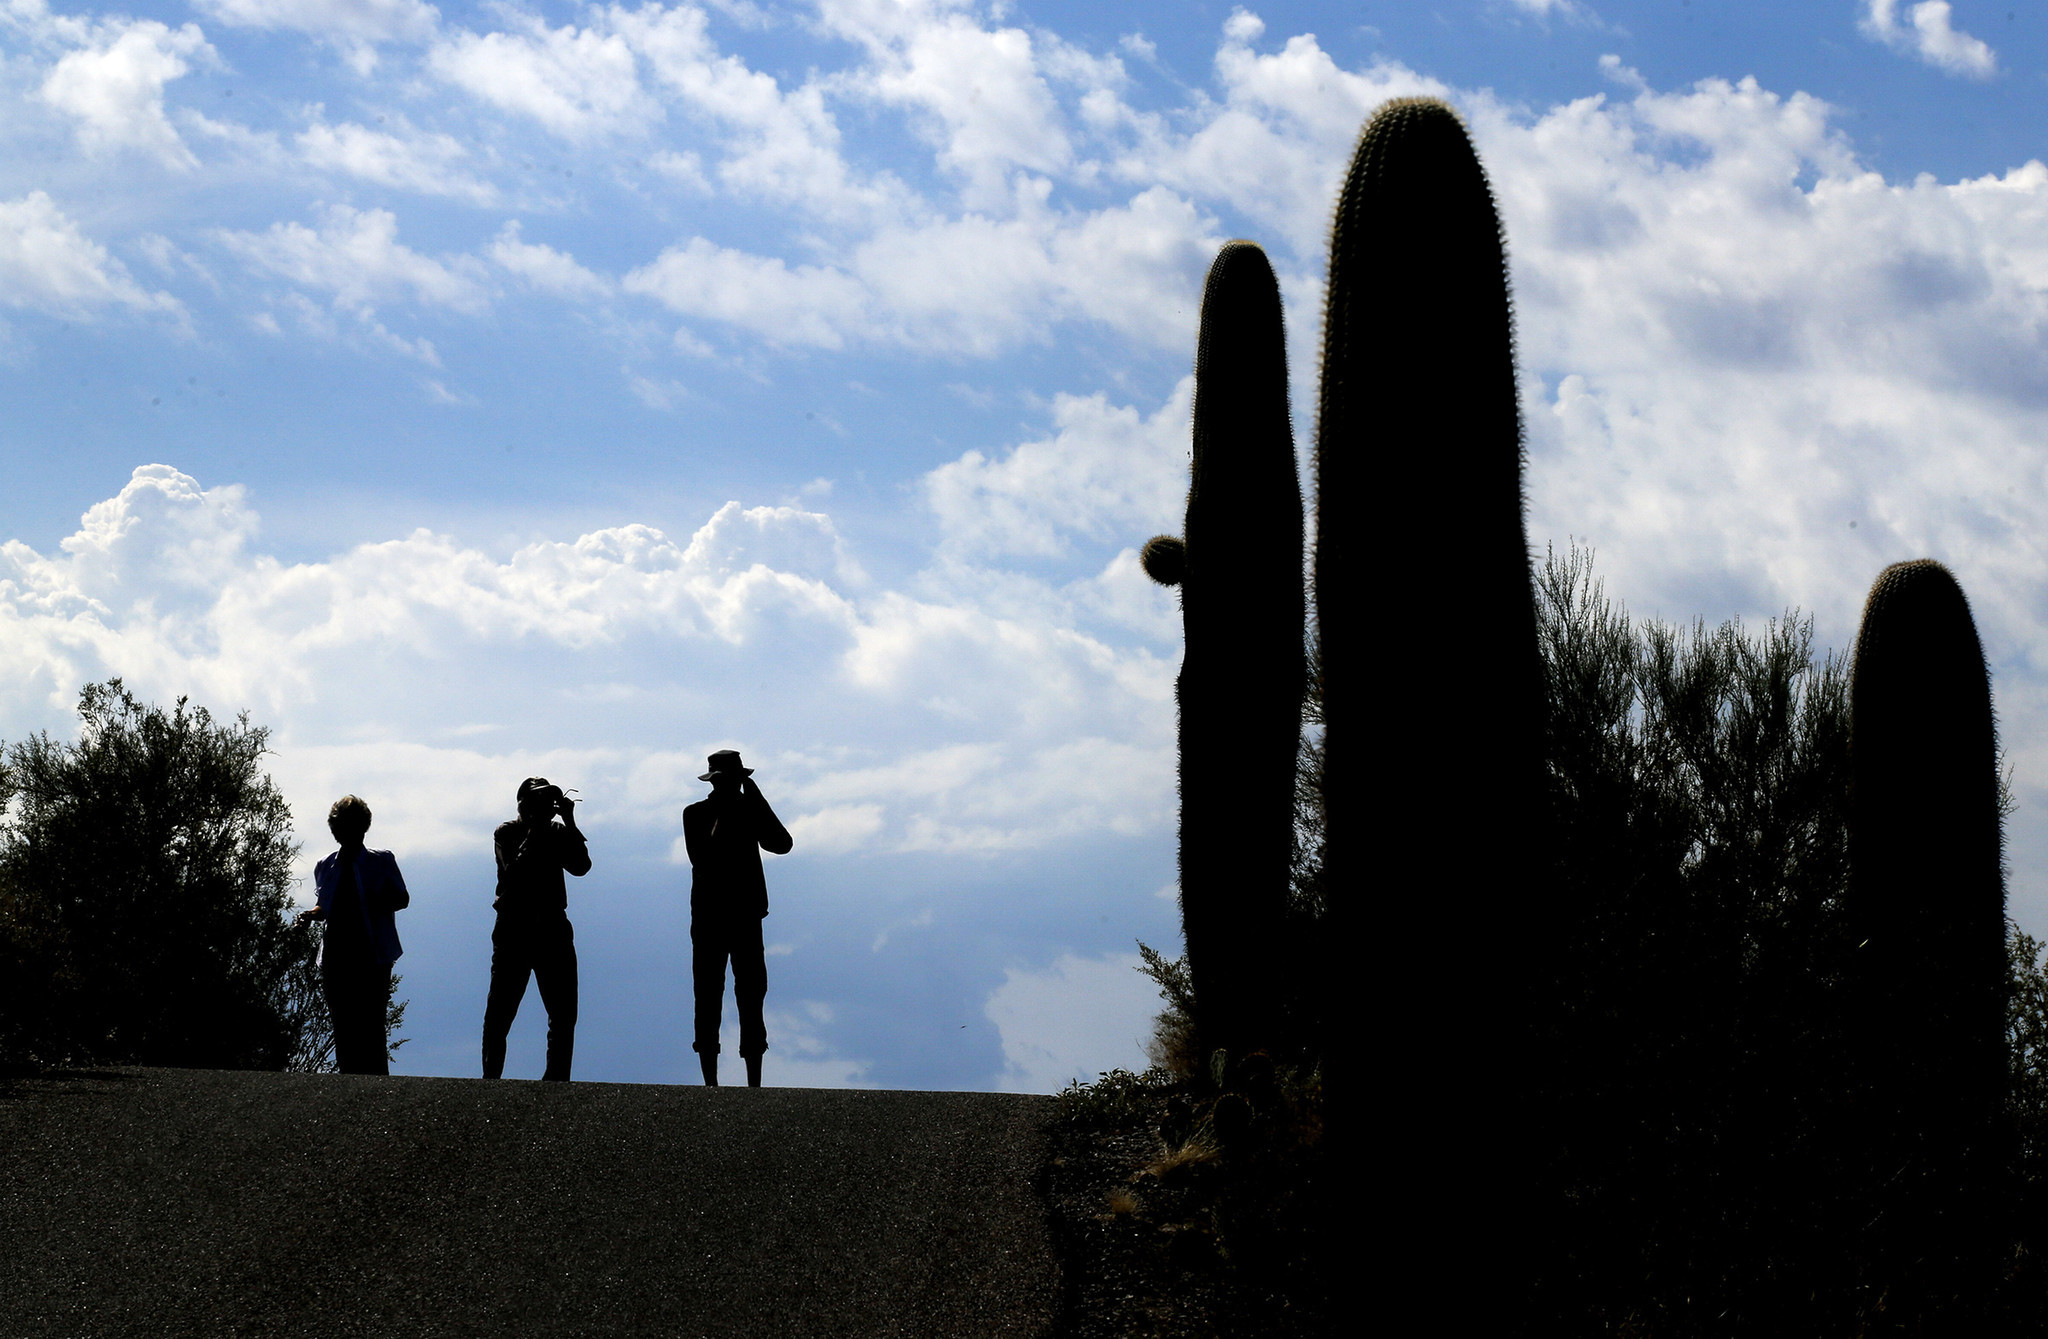 Visitors snap pictures of the iconic cactuses along Cactus Forest Drive in Saguaro National Park.